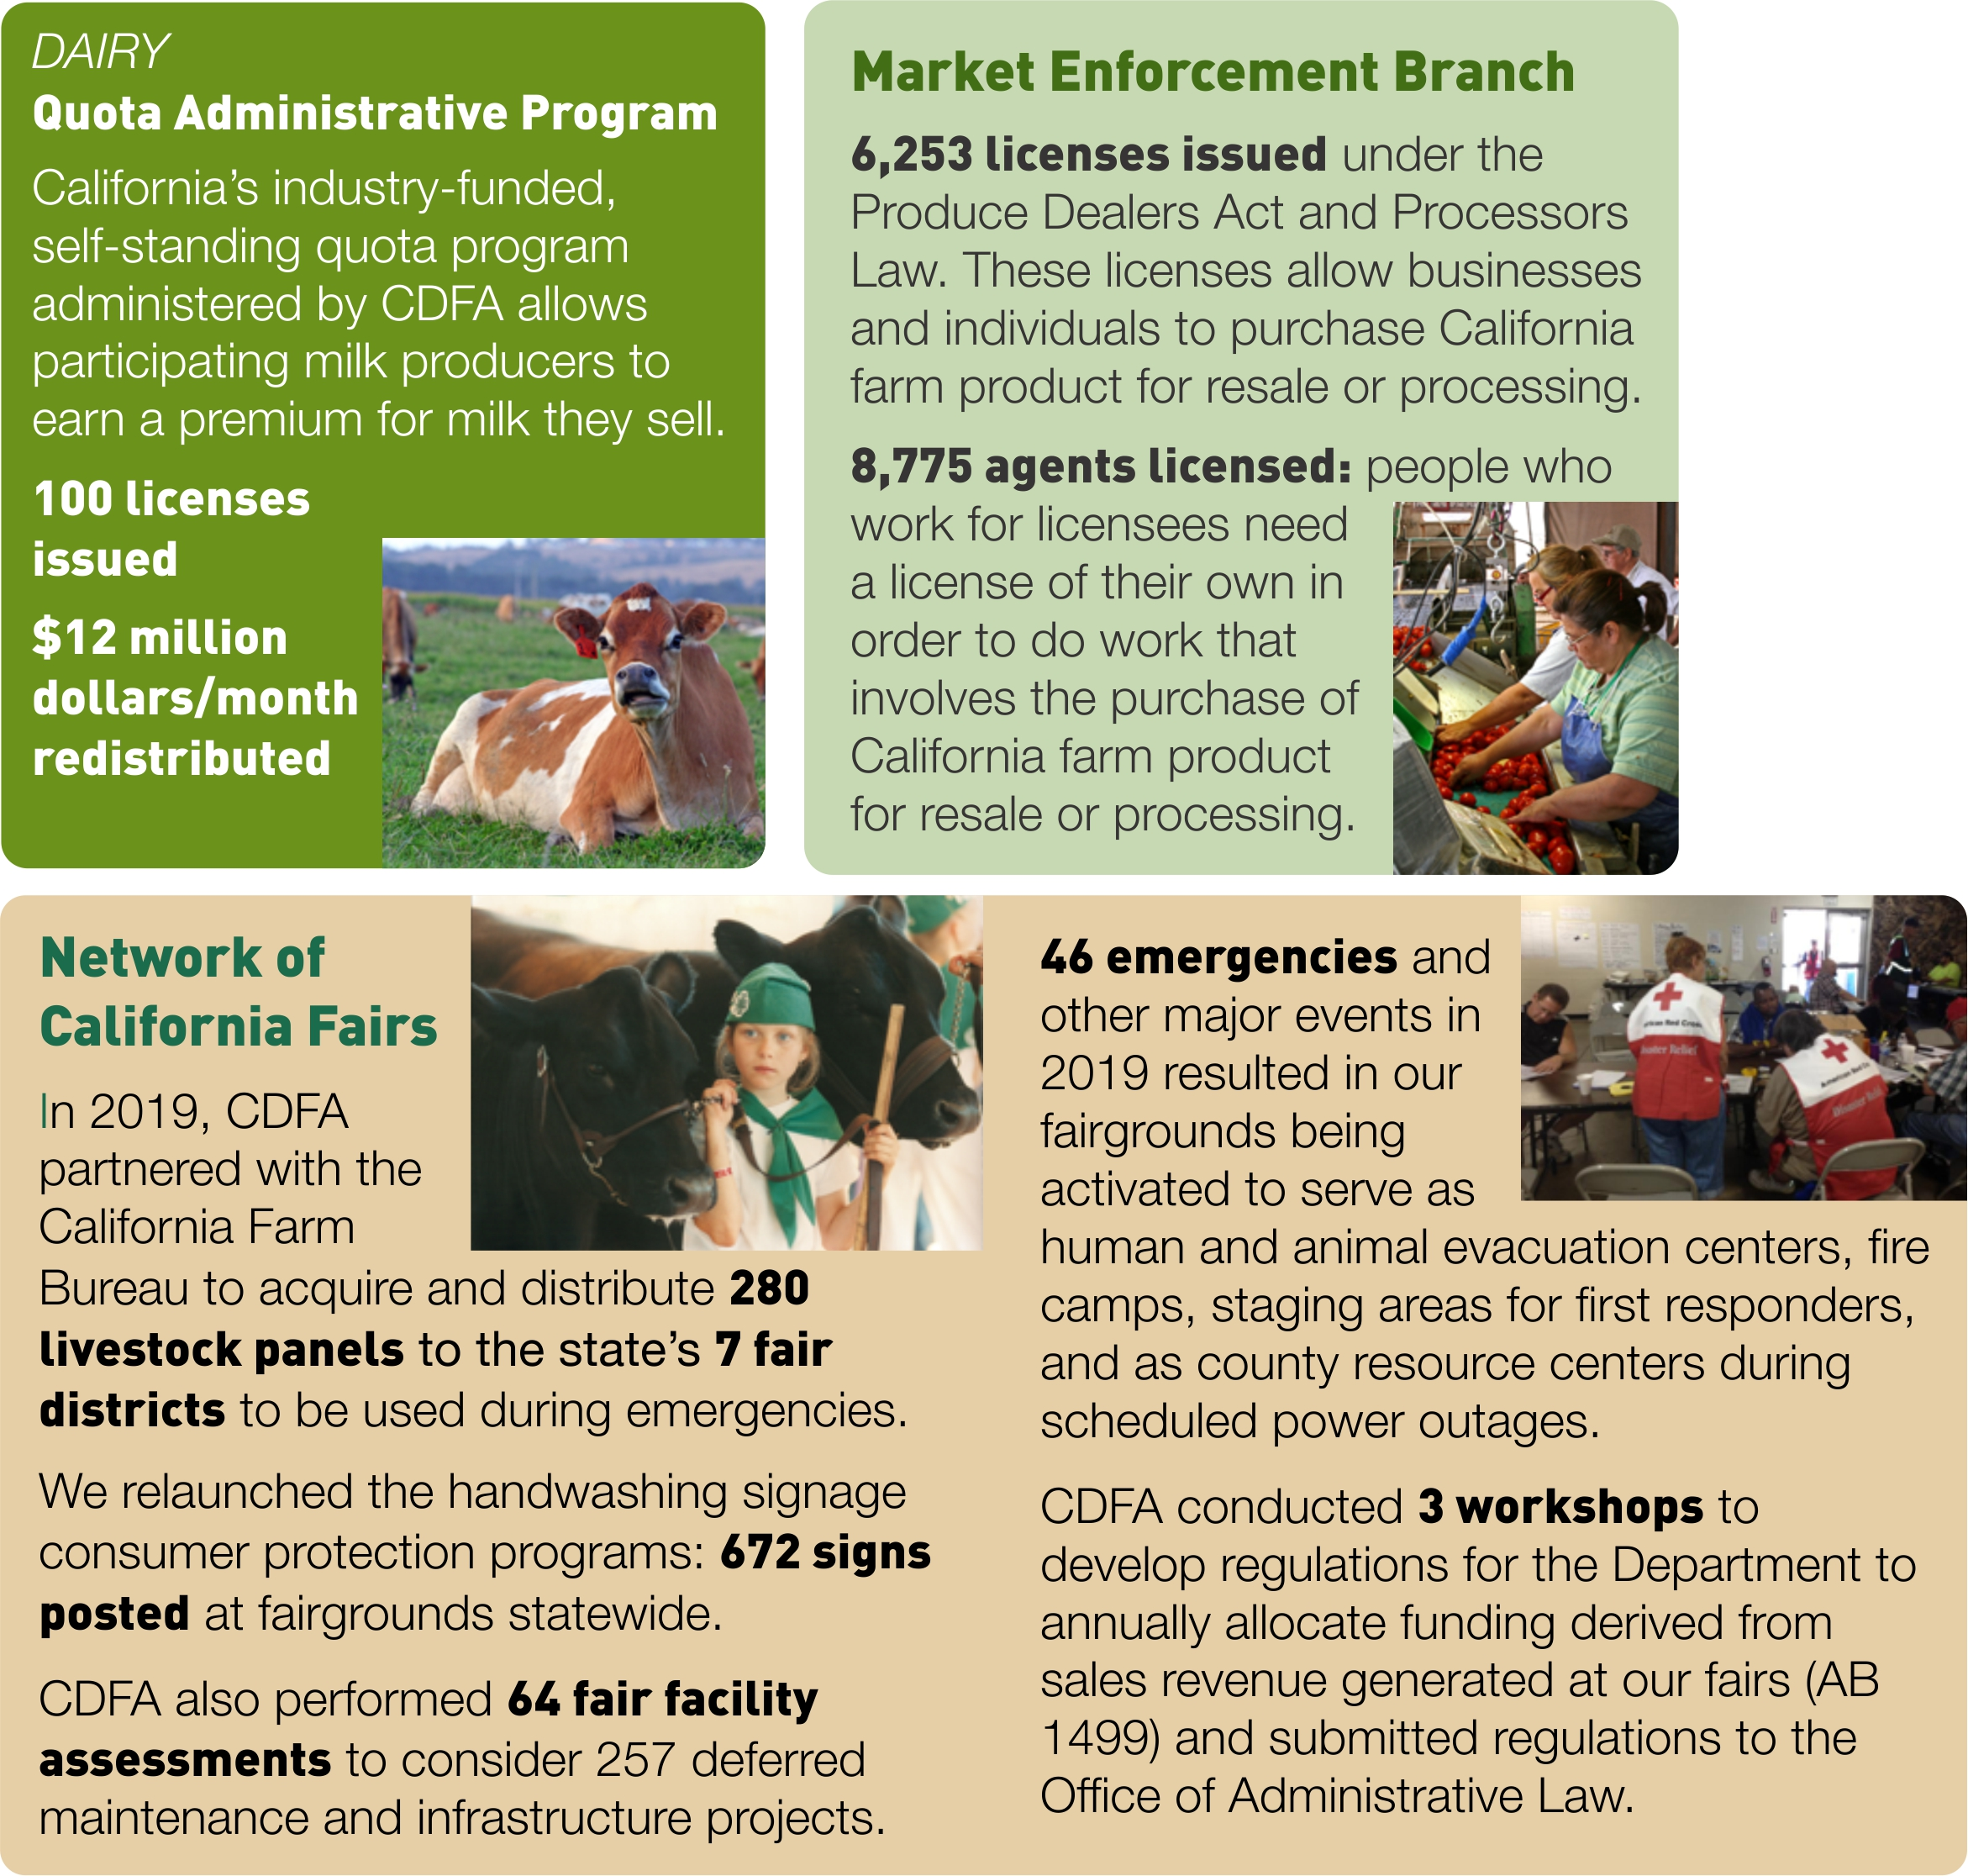 Infographic with details about CDFA's dairy-related Quota Administrative Program, licensing activities of the Market Enforcement Branch, and projects at the Network of California Fairs